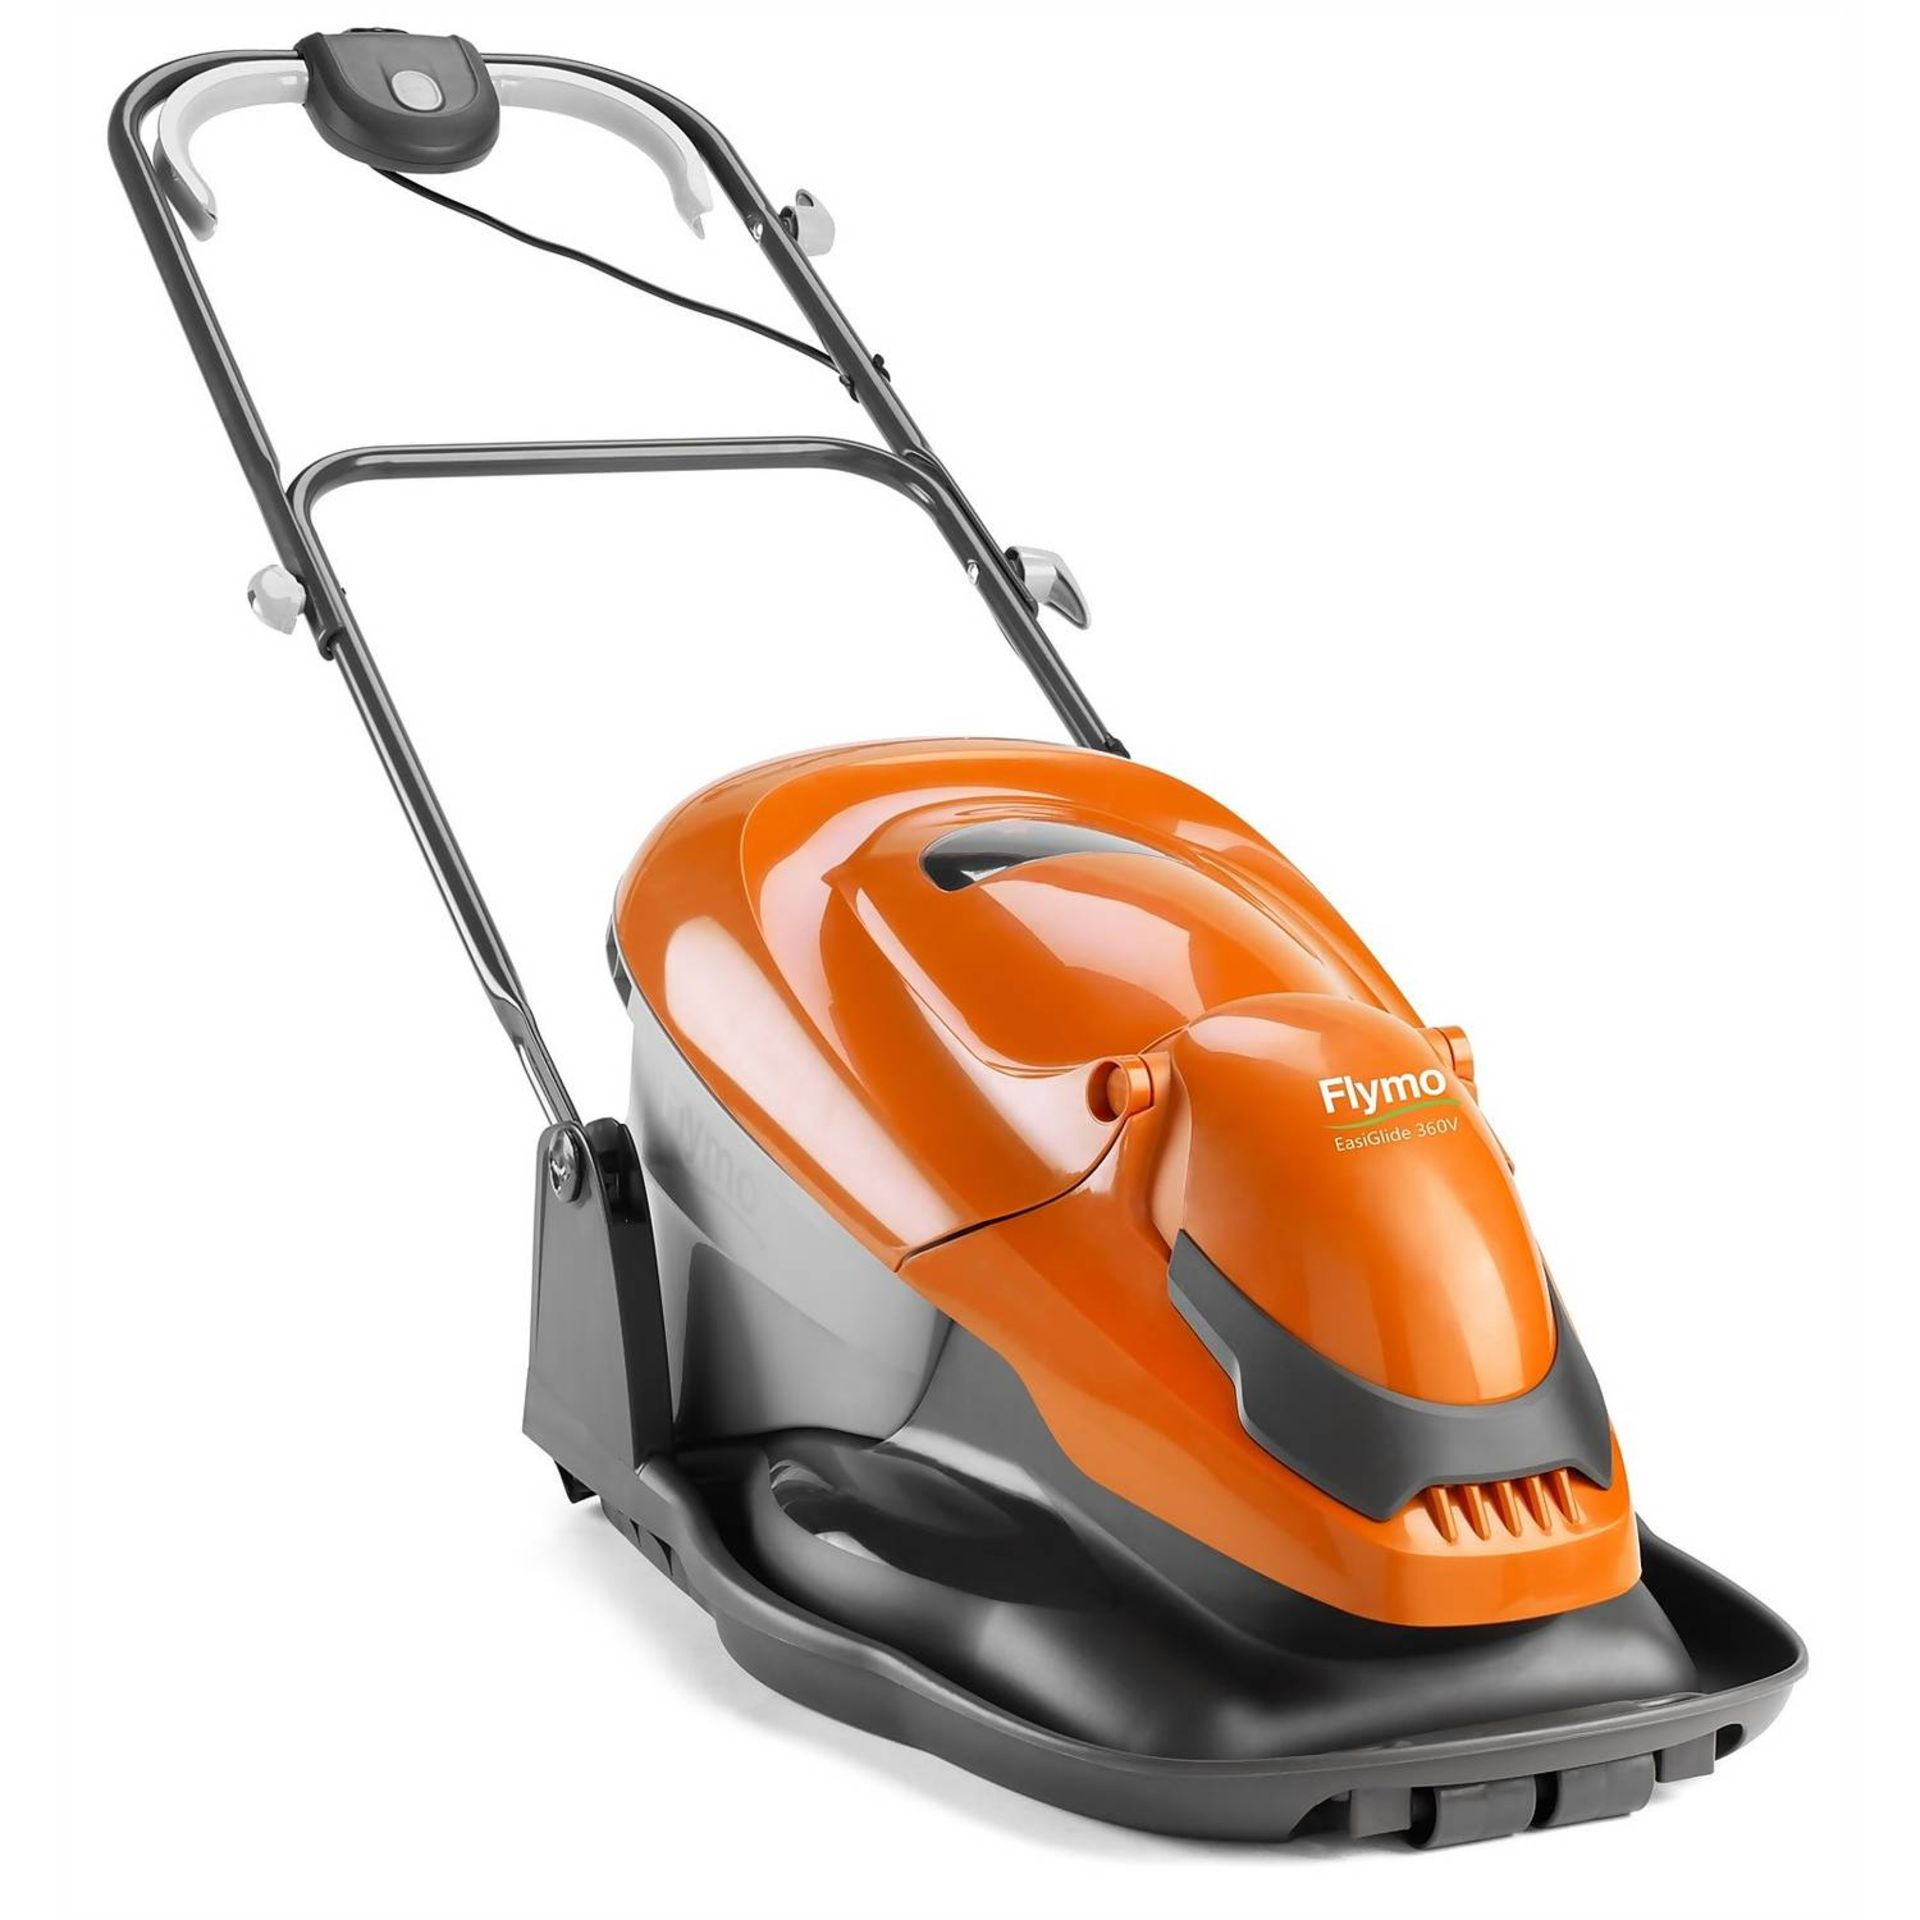 (P5) 1x Flymo EasiGlide 360V Electric Hover Lawnmower RRP £139.00.